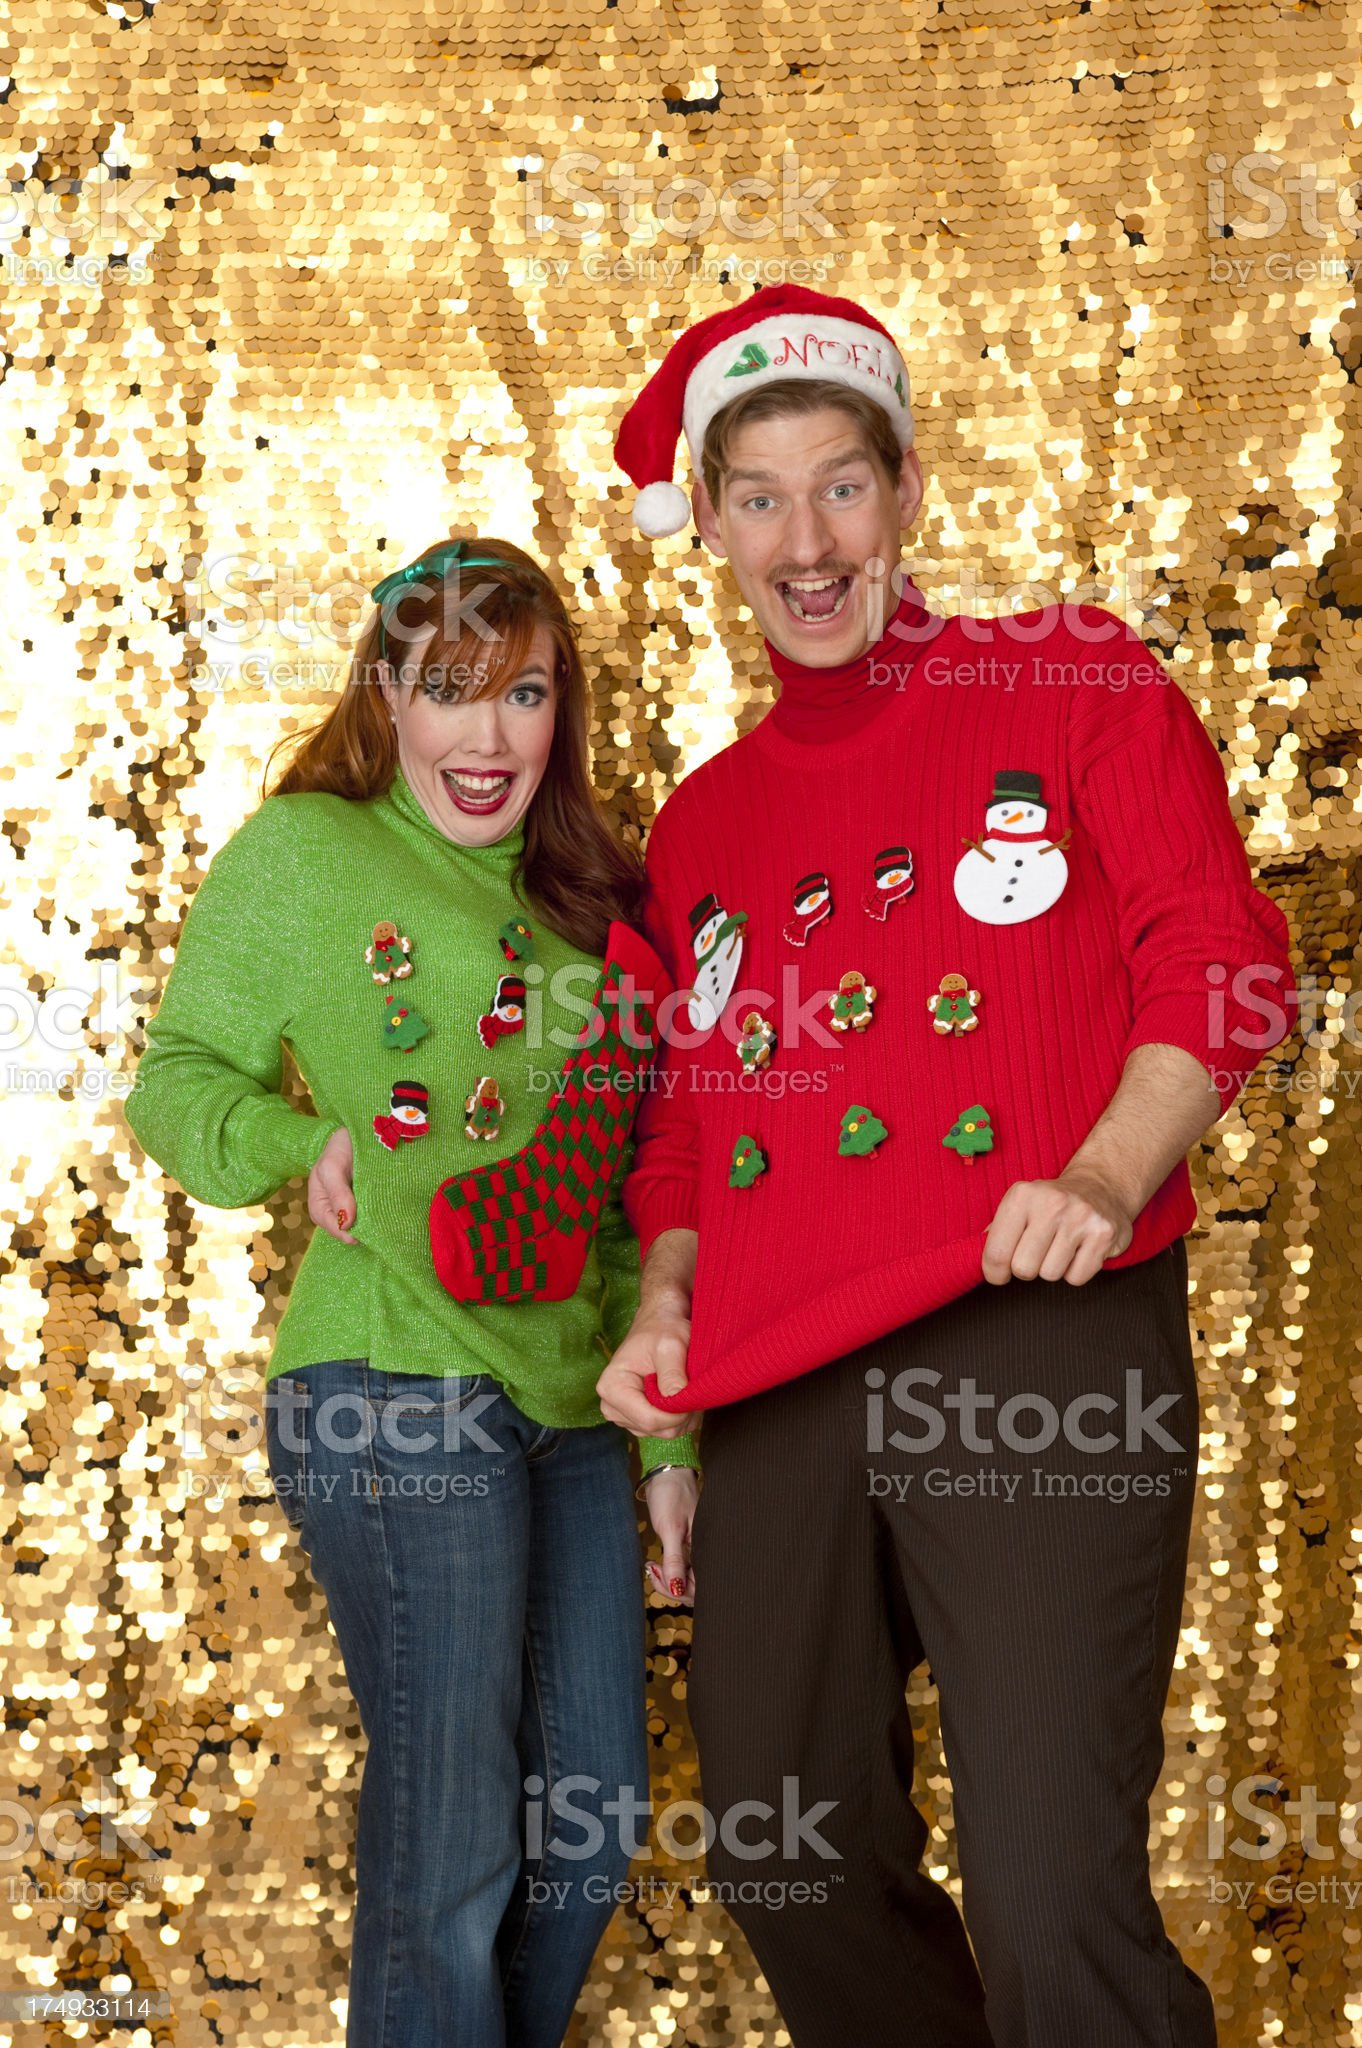 Ugly Christmas Sweaters royalty-free stock photo